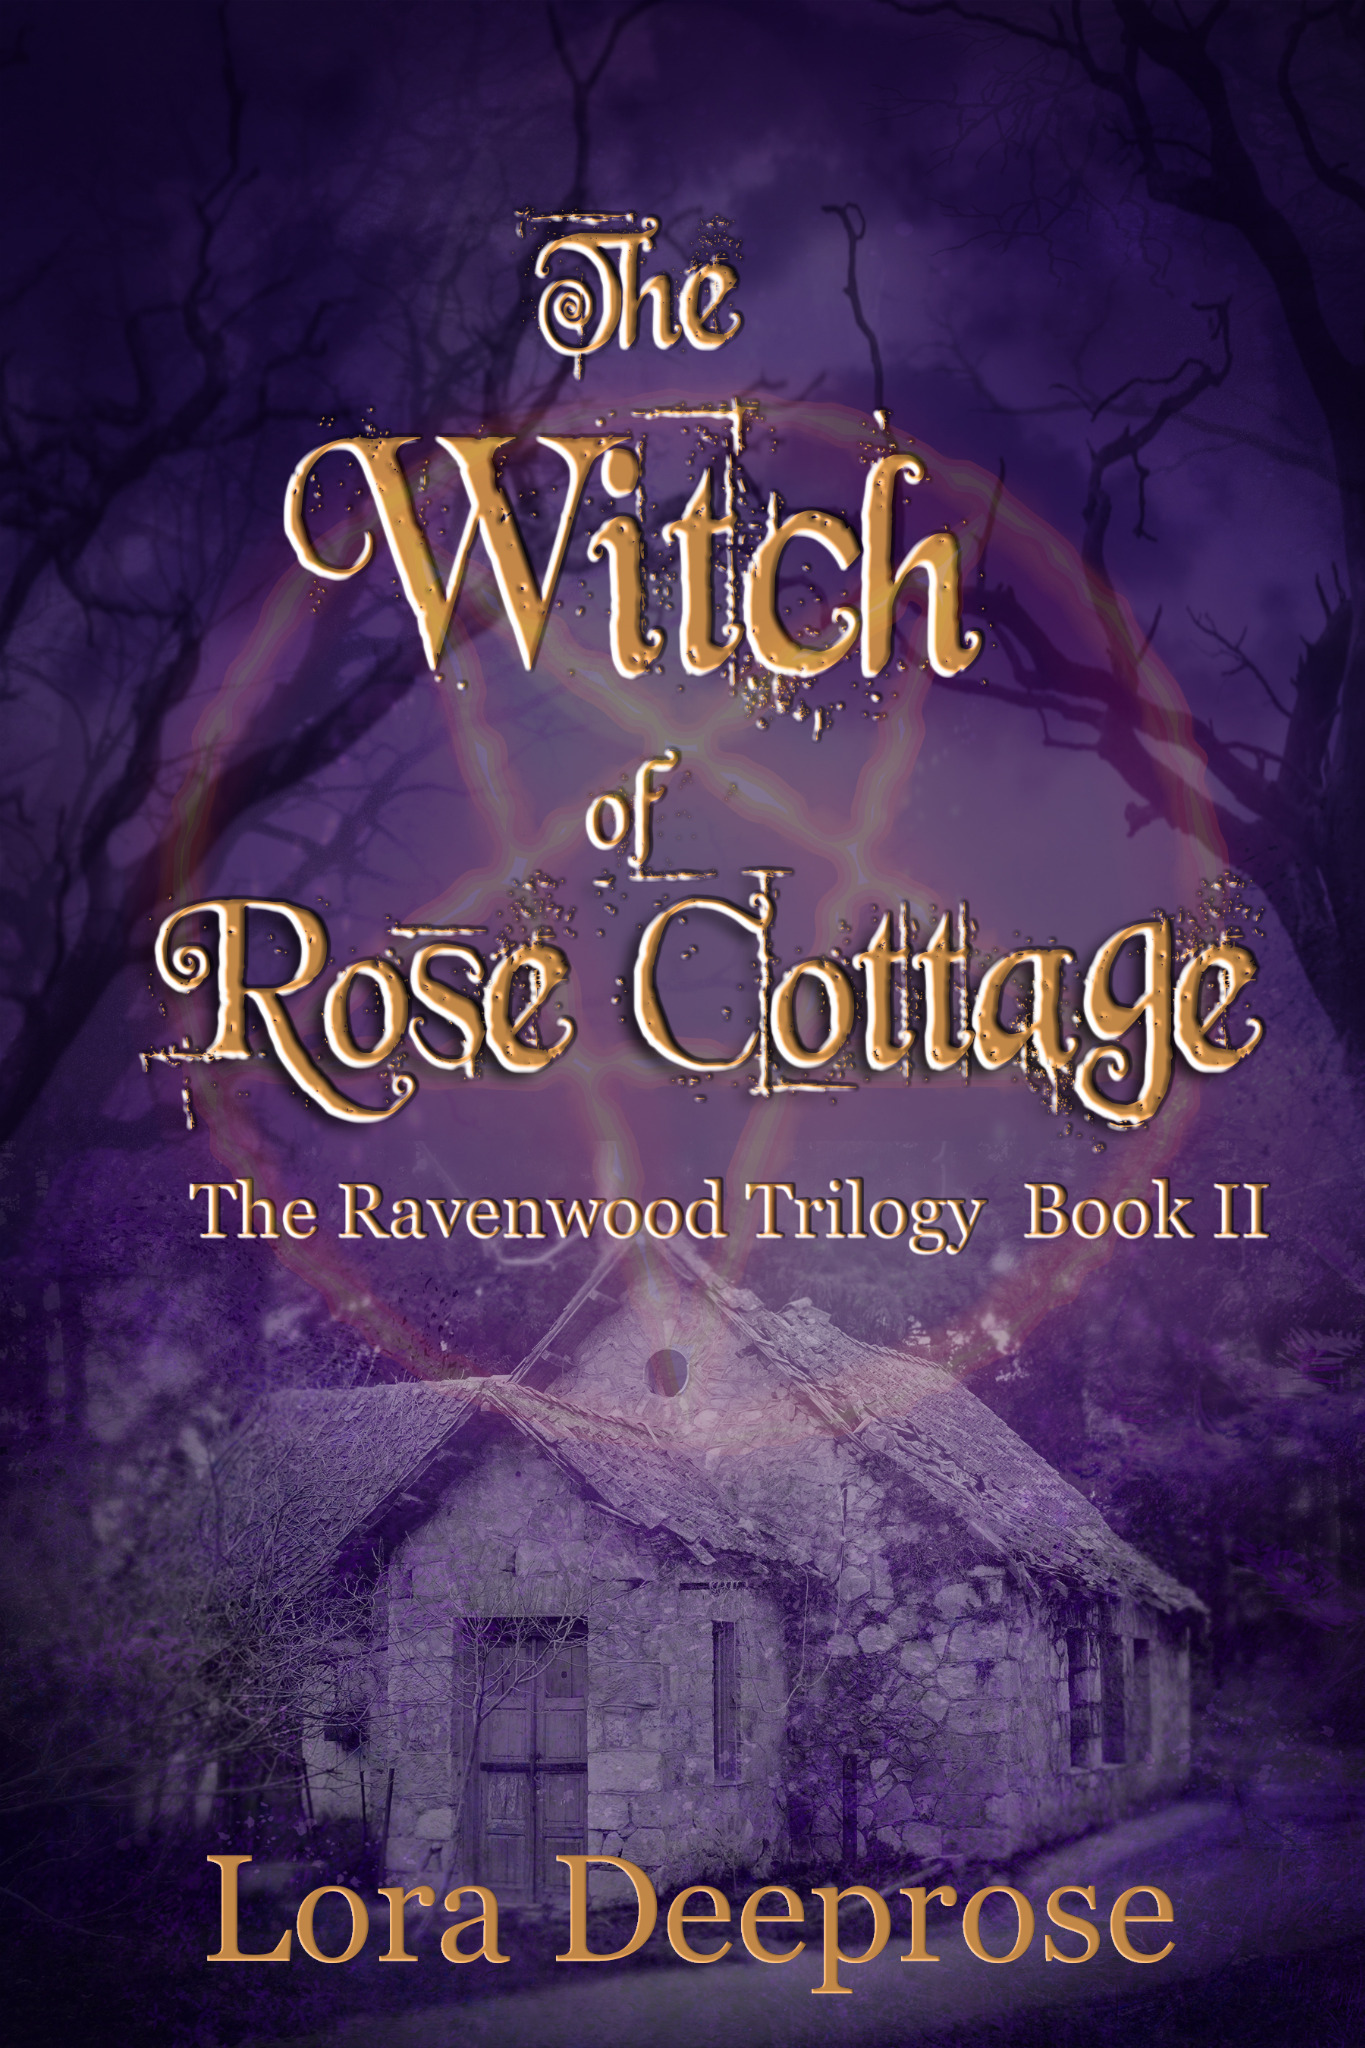 The Witch of Rose Cottage - The Ravenwood Trilogy Book 2